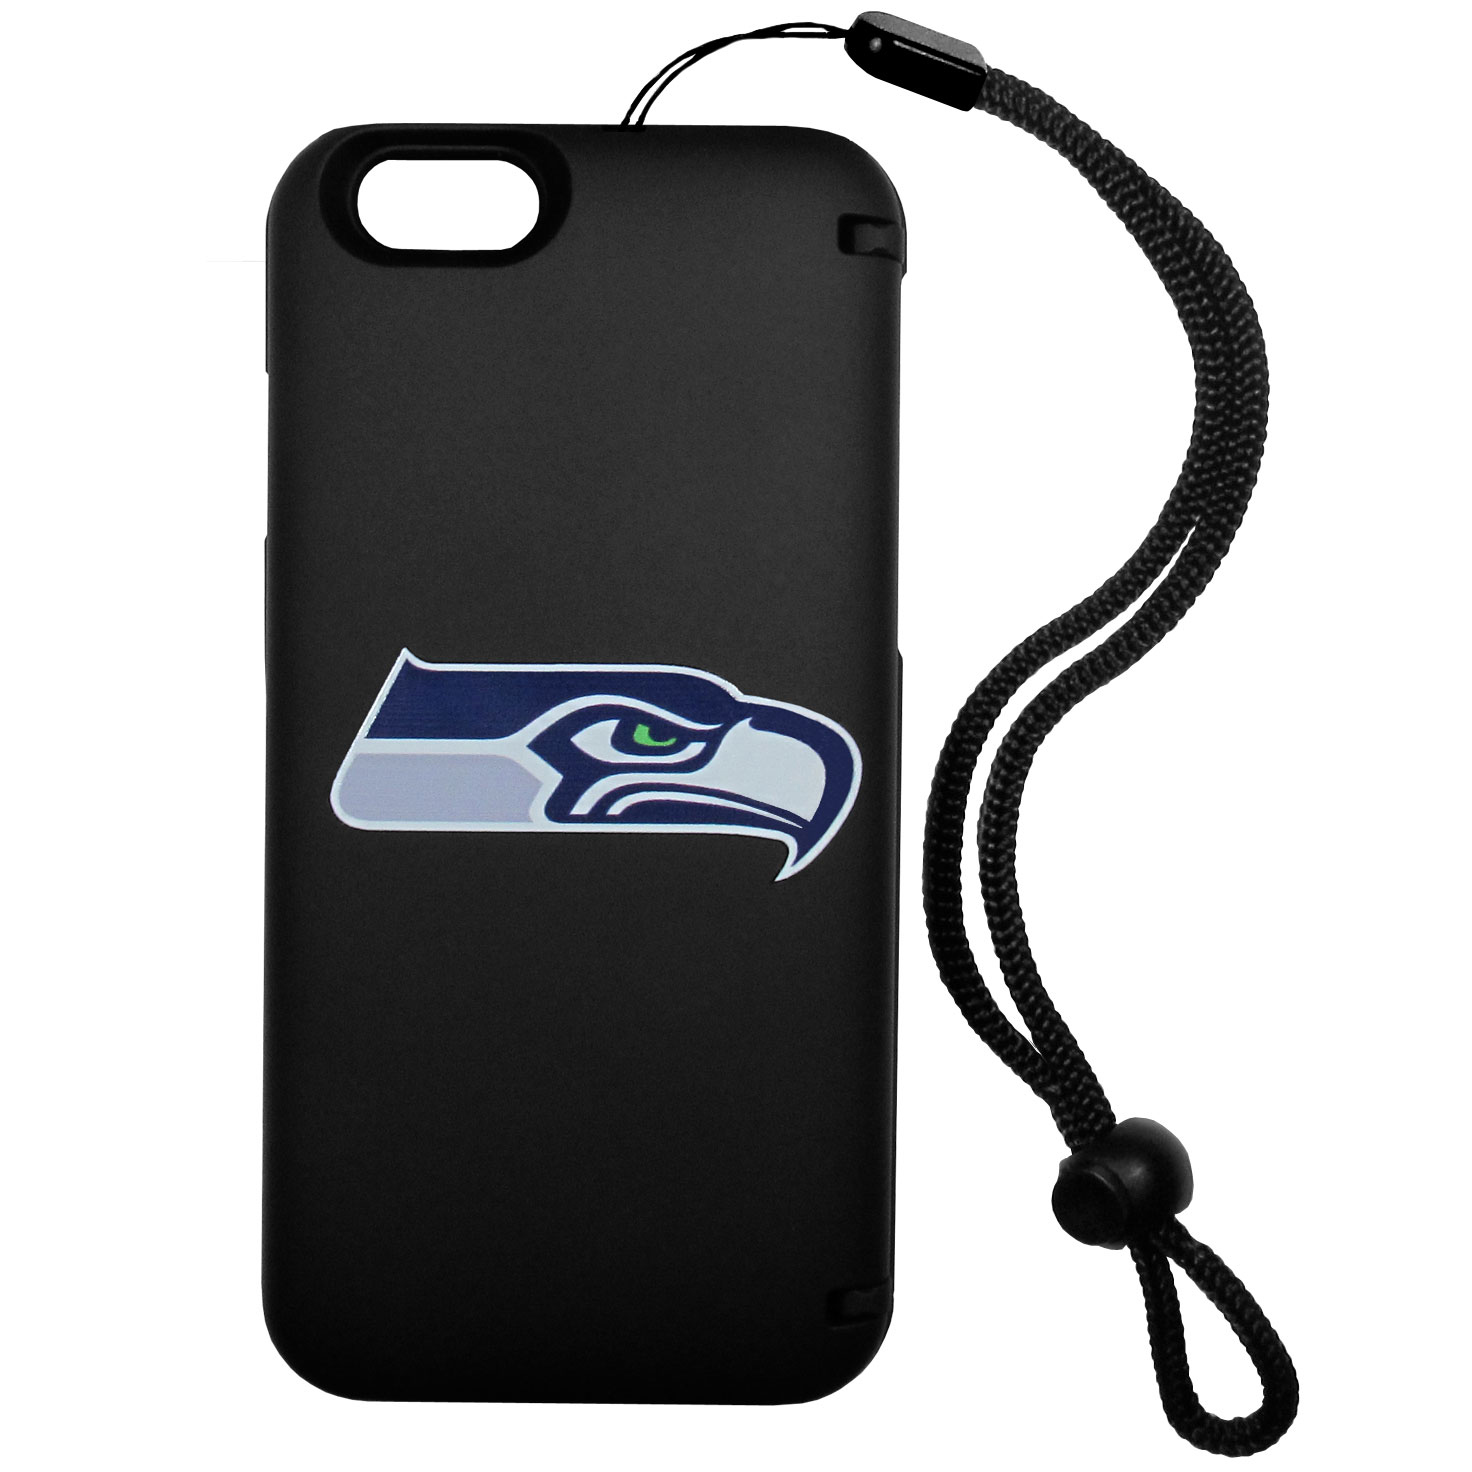 Seattle Seahawks iPhone 6 Everything Case - This case really does have everything but the kitchen sink! The hidden compartment lets you keep your cards, money and tickets to the big game safe and secure and has a compact mirror so you can make sure your game face is ready to go. It also comes with a kickstand to make chatting and watching videos a breeze. The wrist strap allows you to travel with ease with your everything case. If that's not enough, it also comes with the Seattle Seahawks logo printed in expert detail on the front.